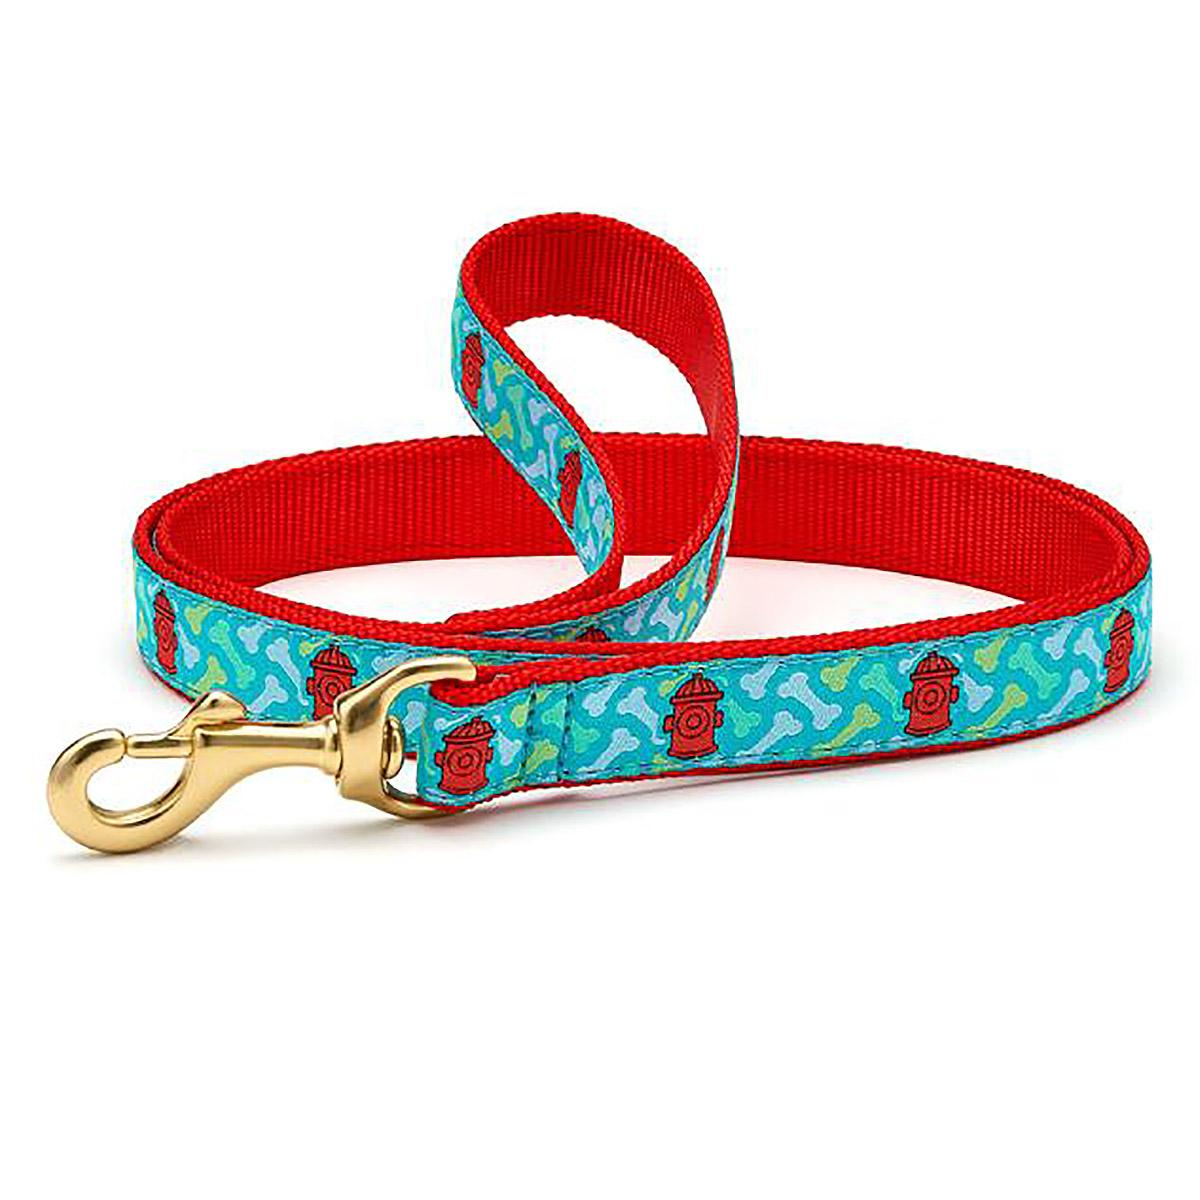 Hydrant Dog Leash by Up Country